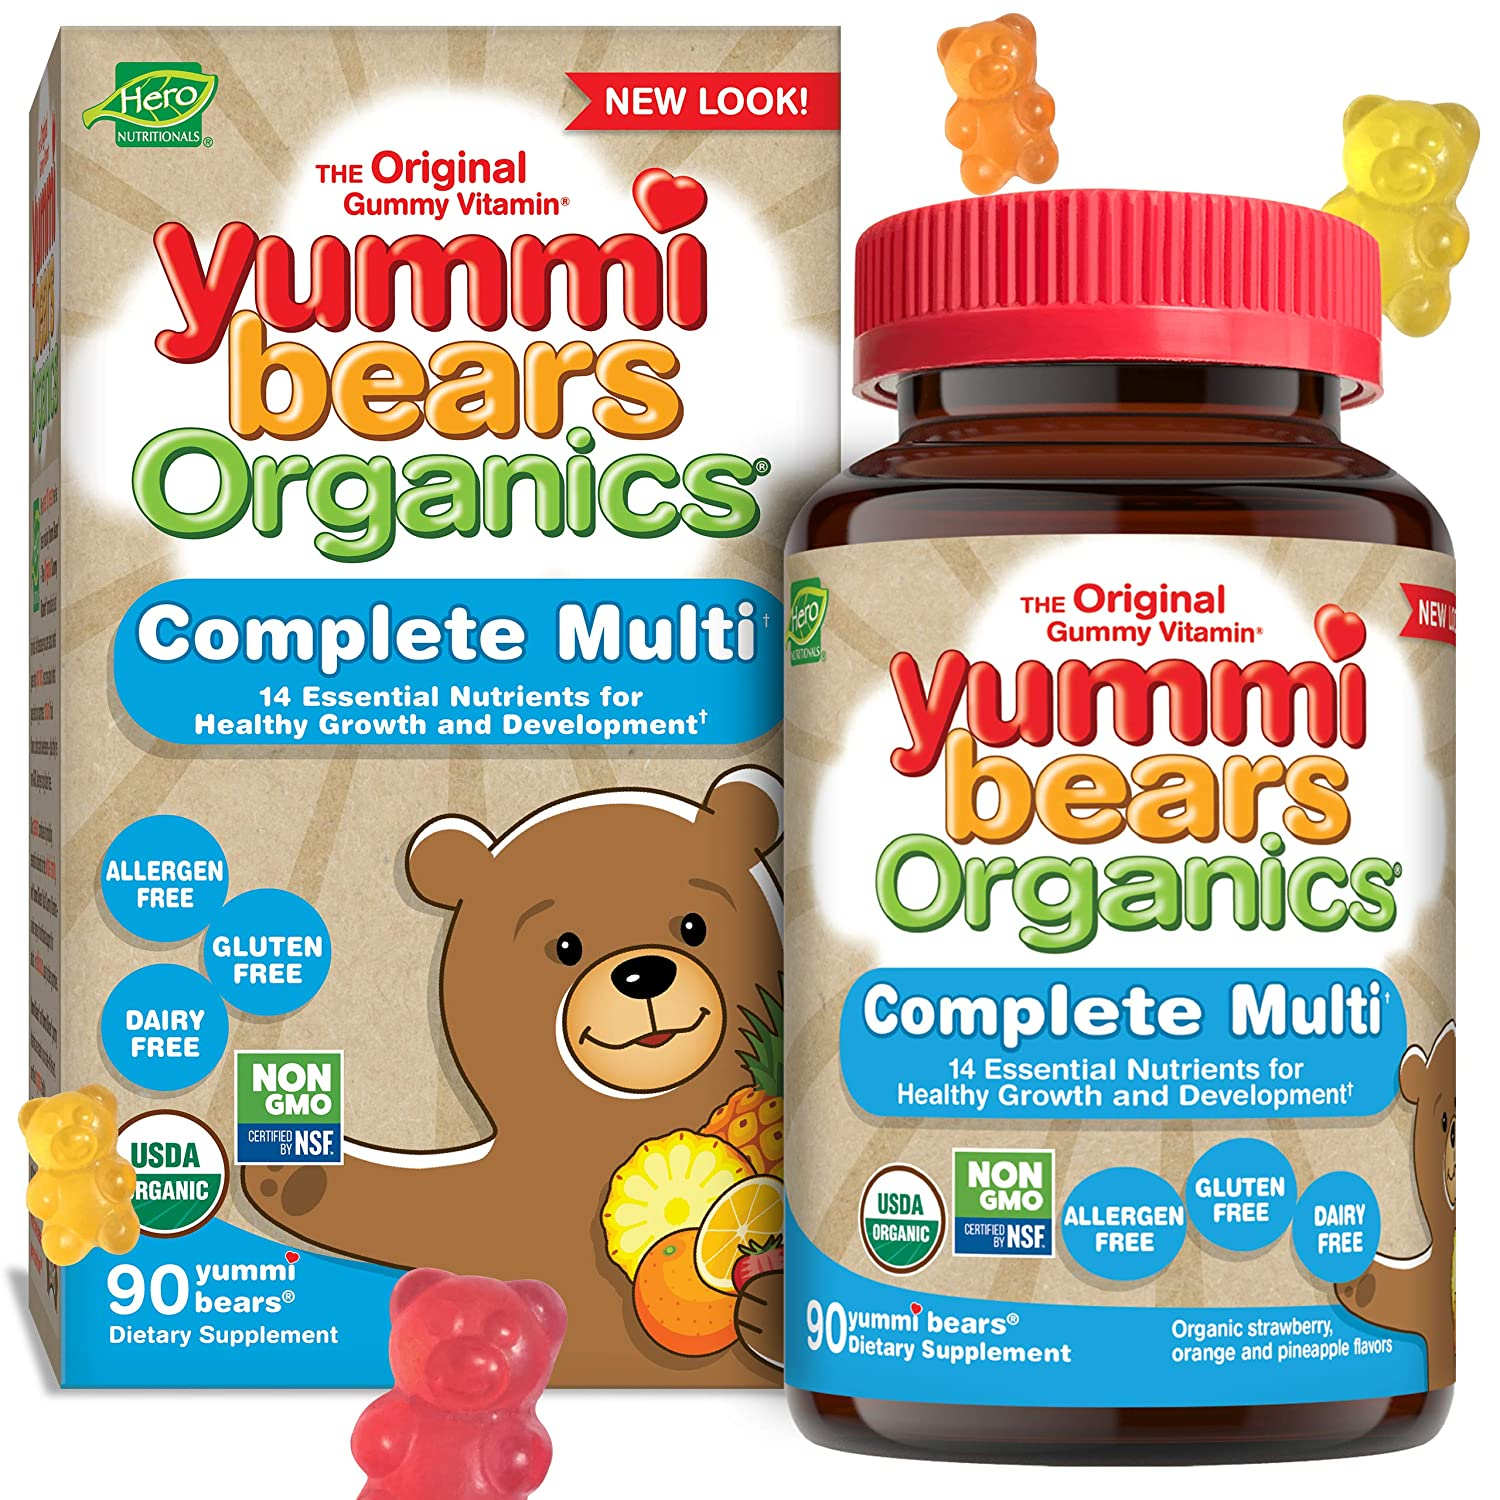 Yummi Bears Organics Complete Multi Vitamin and Mineral Supplement, Gummy Vitamins for Kids, 90 Count